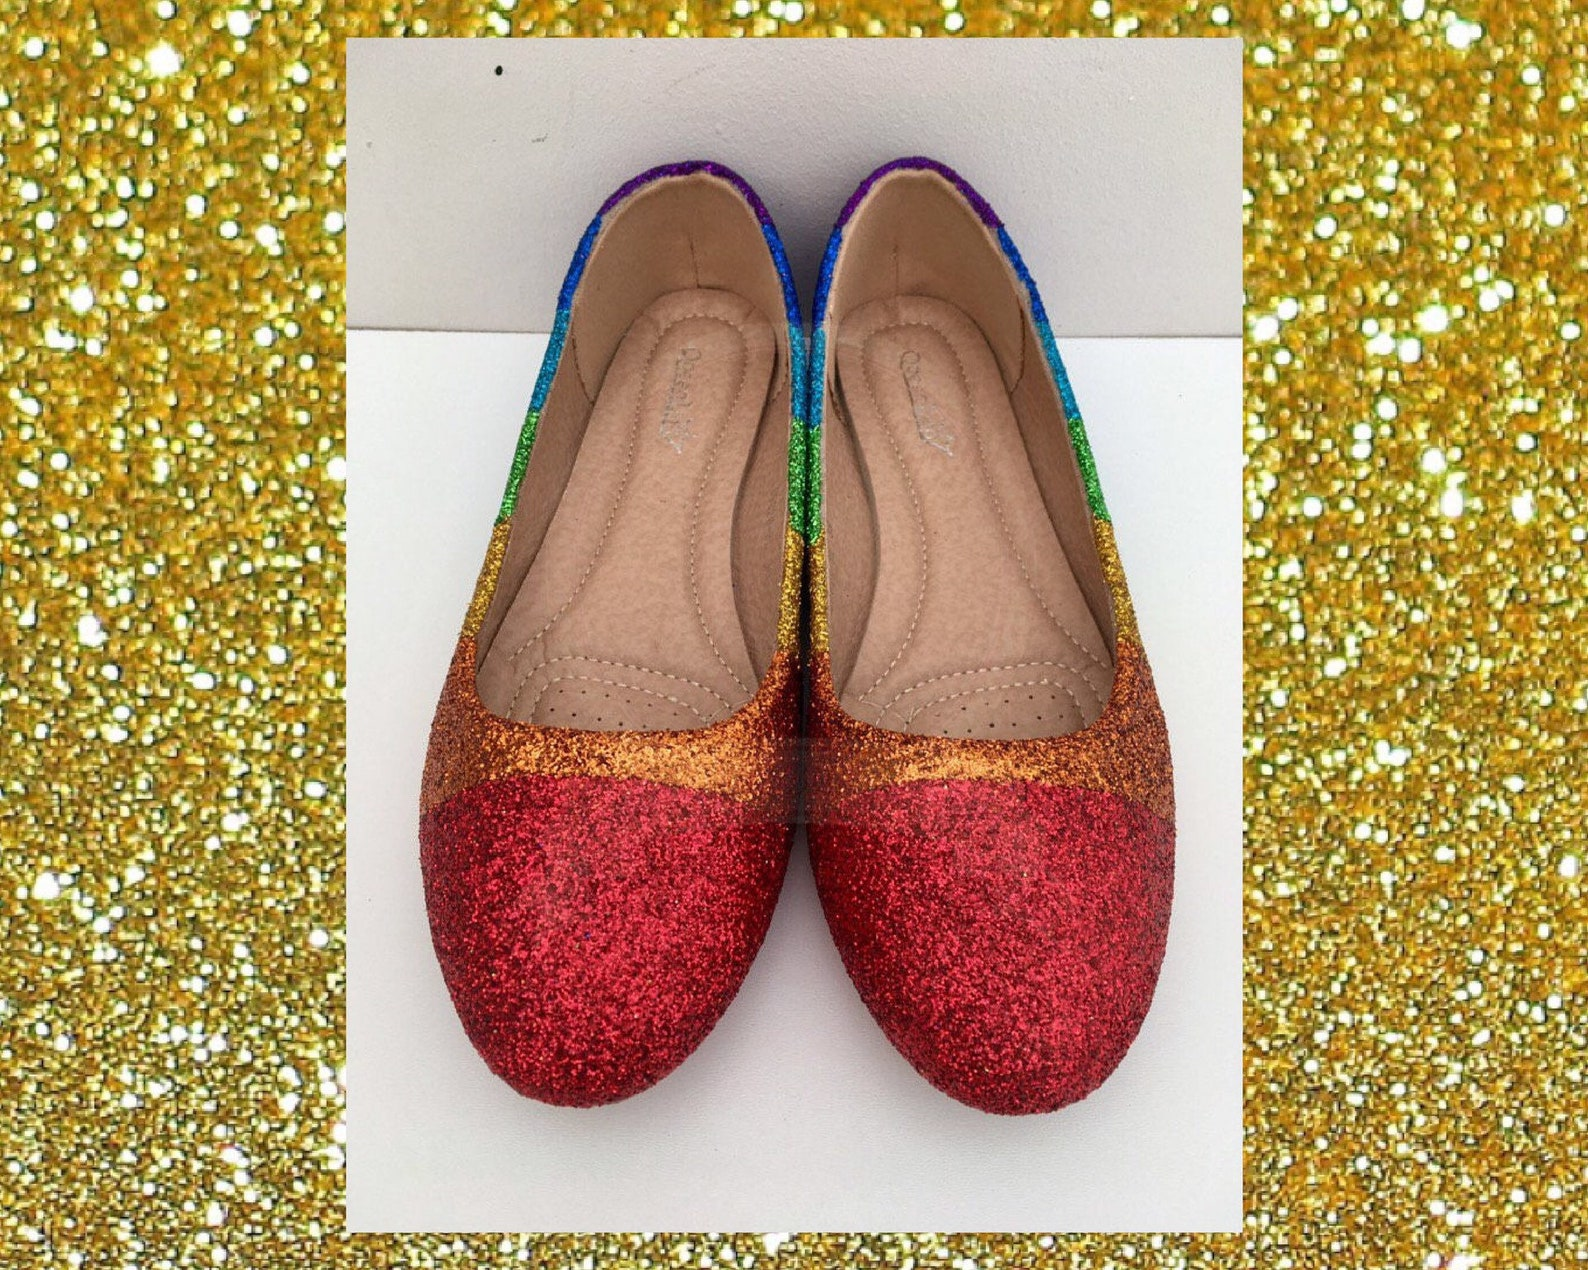 rainbow shoes for women, glitter shoes for women, rainbow glitter shoes, rainbow gift for women, ballet flat wedding shoes, prom